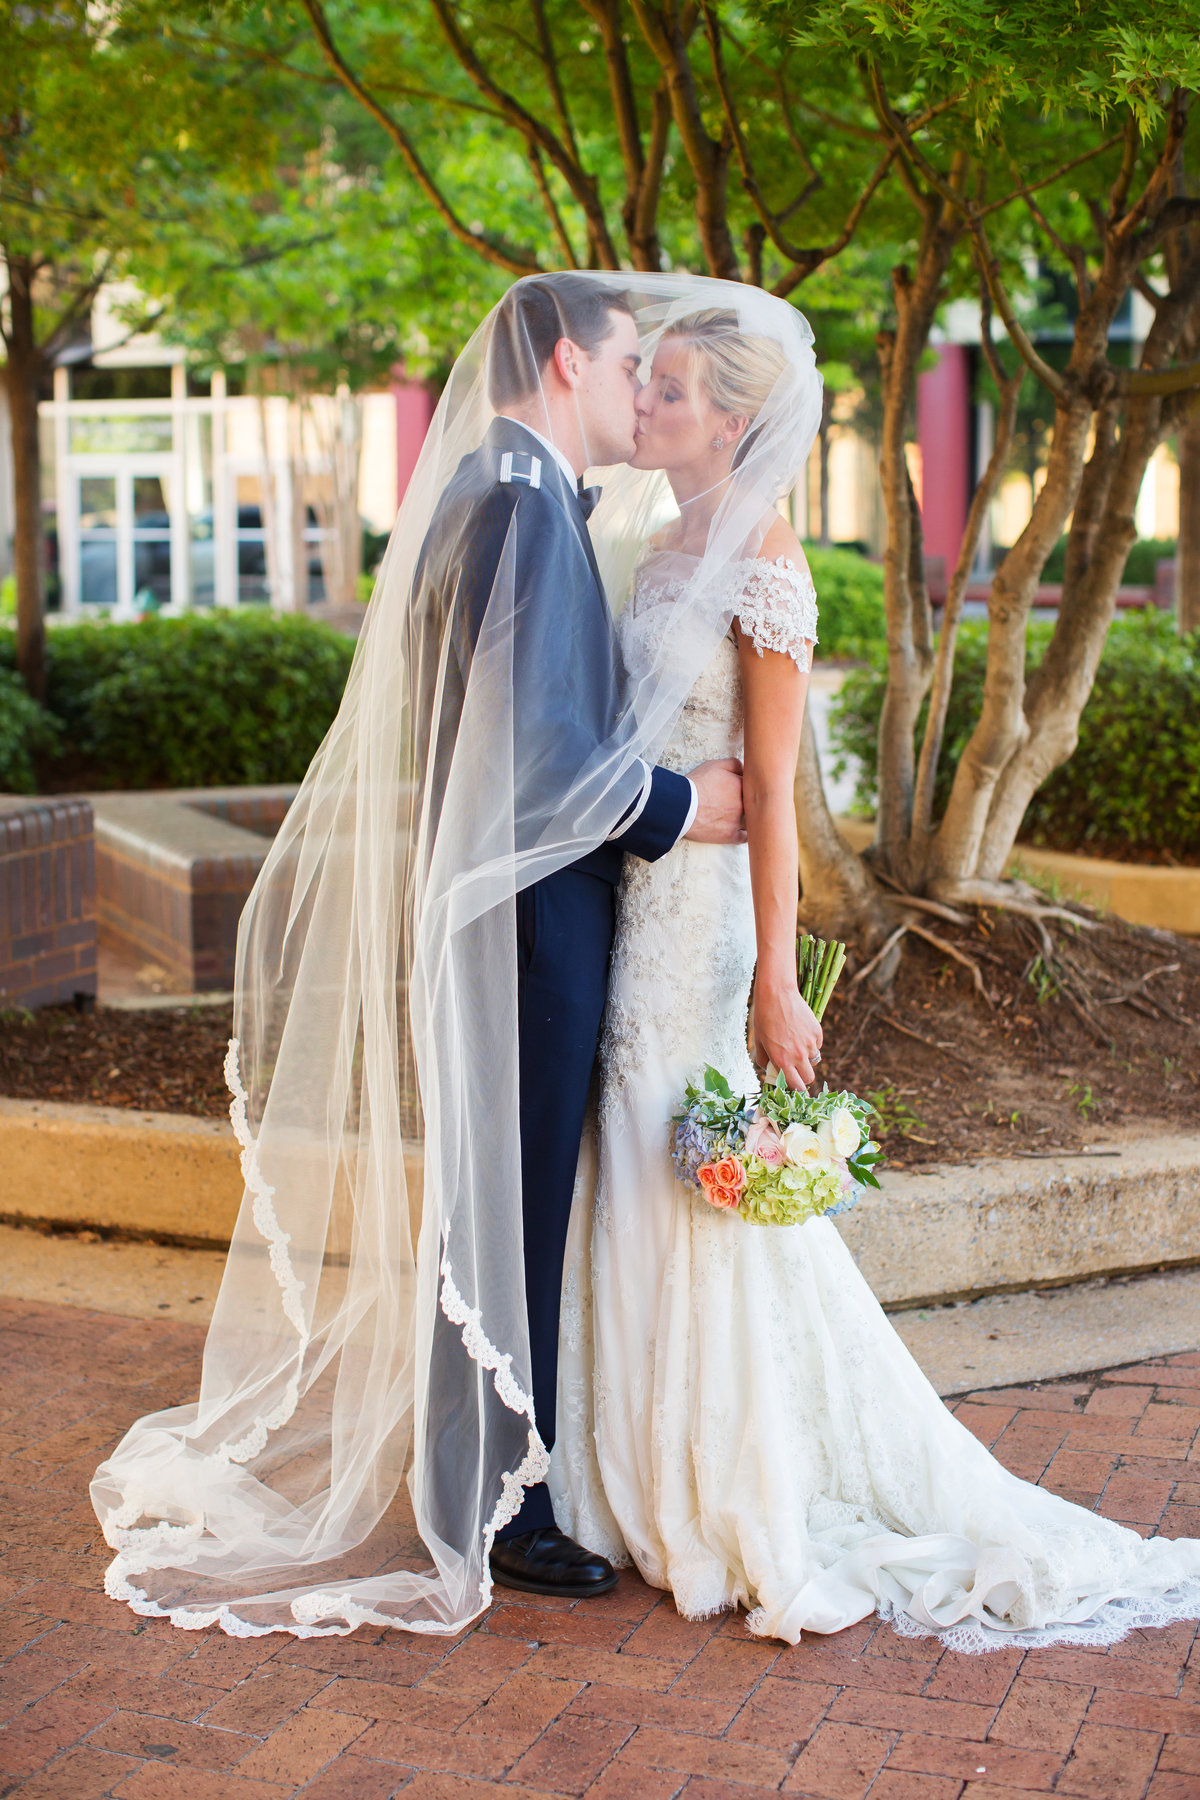 tessa__logan_wedding_jadore_photographie_tuscaloosa_alabama-717b